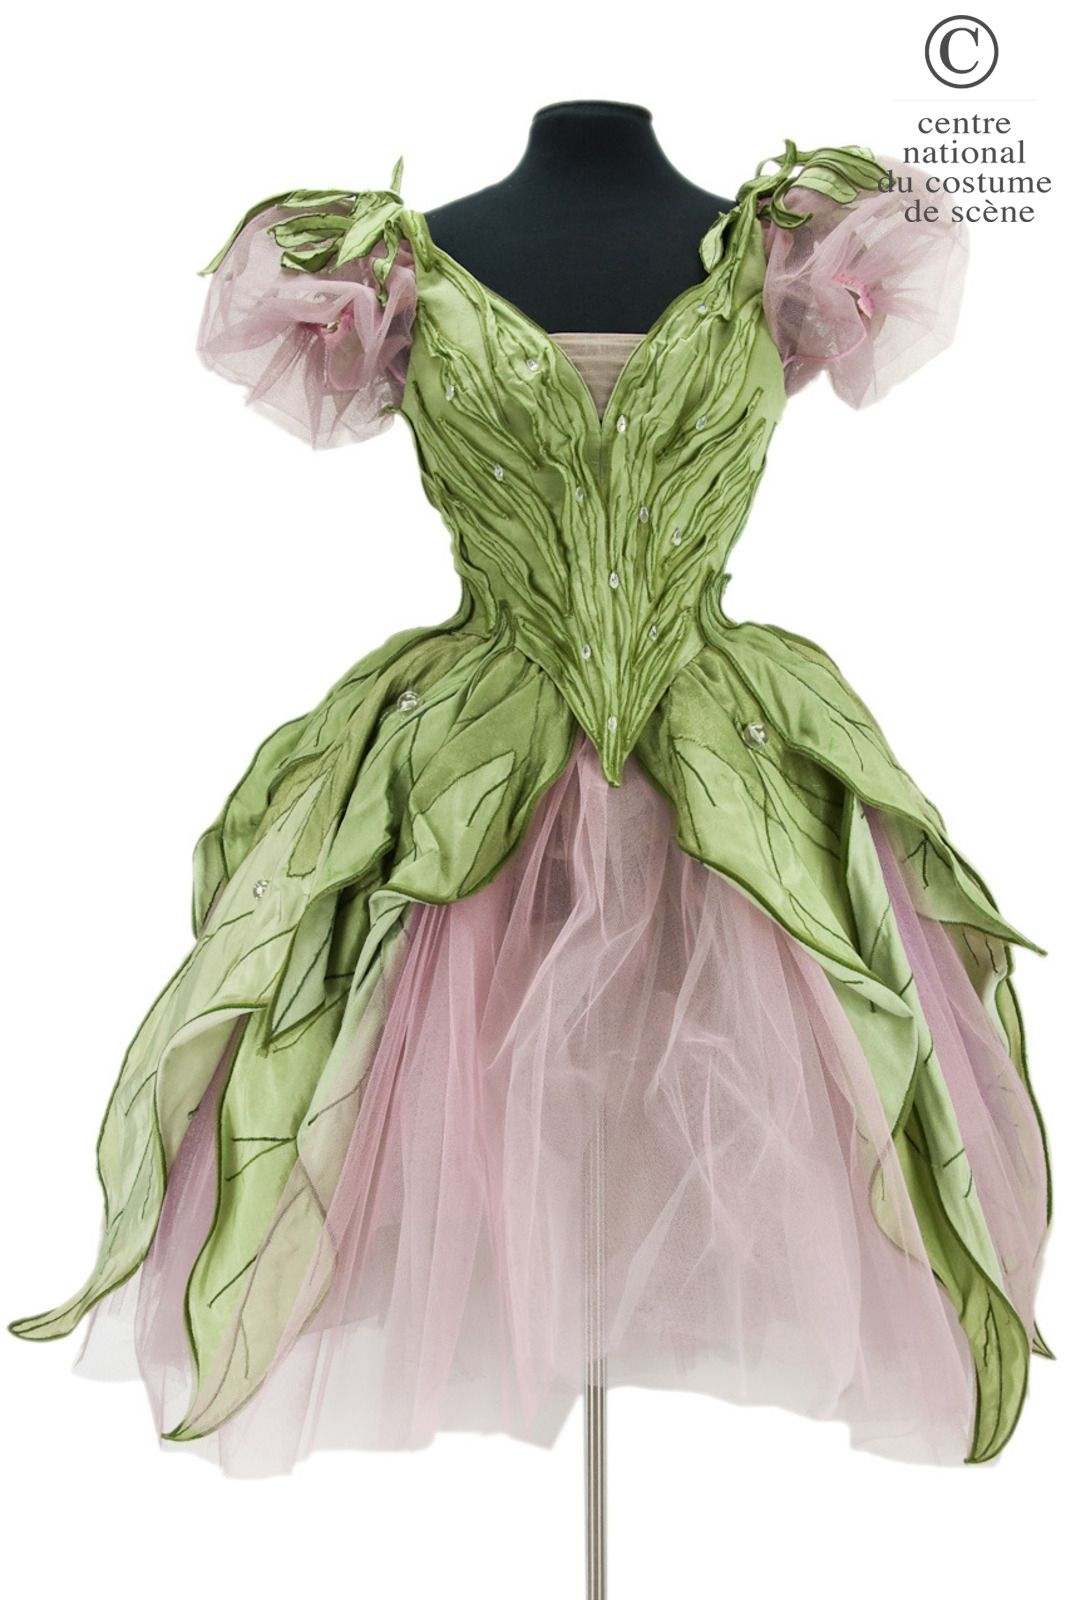 Opera National de Paris Long pink tulle tutu, bustier, basque green silk and crystal-shaped leaves, garnished with iridescent cabochons. Piquet pink flowers.